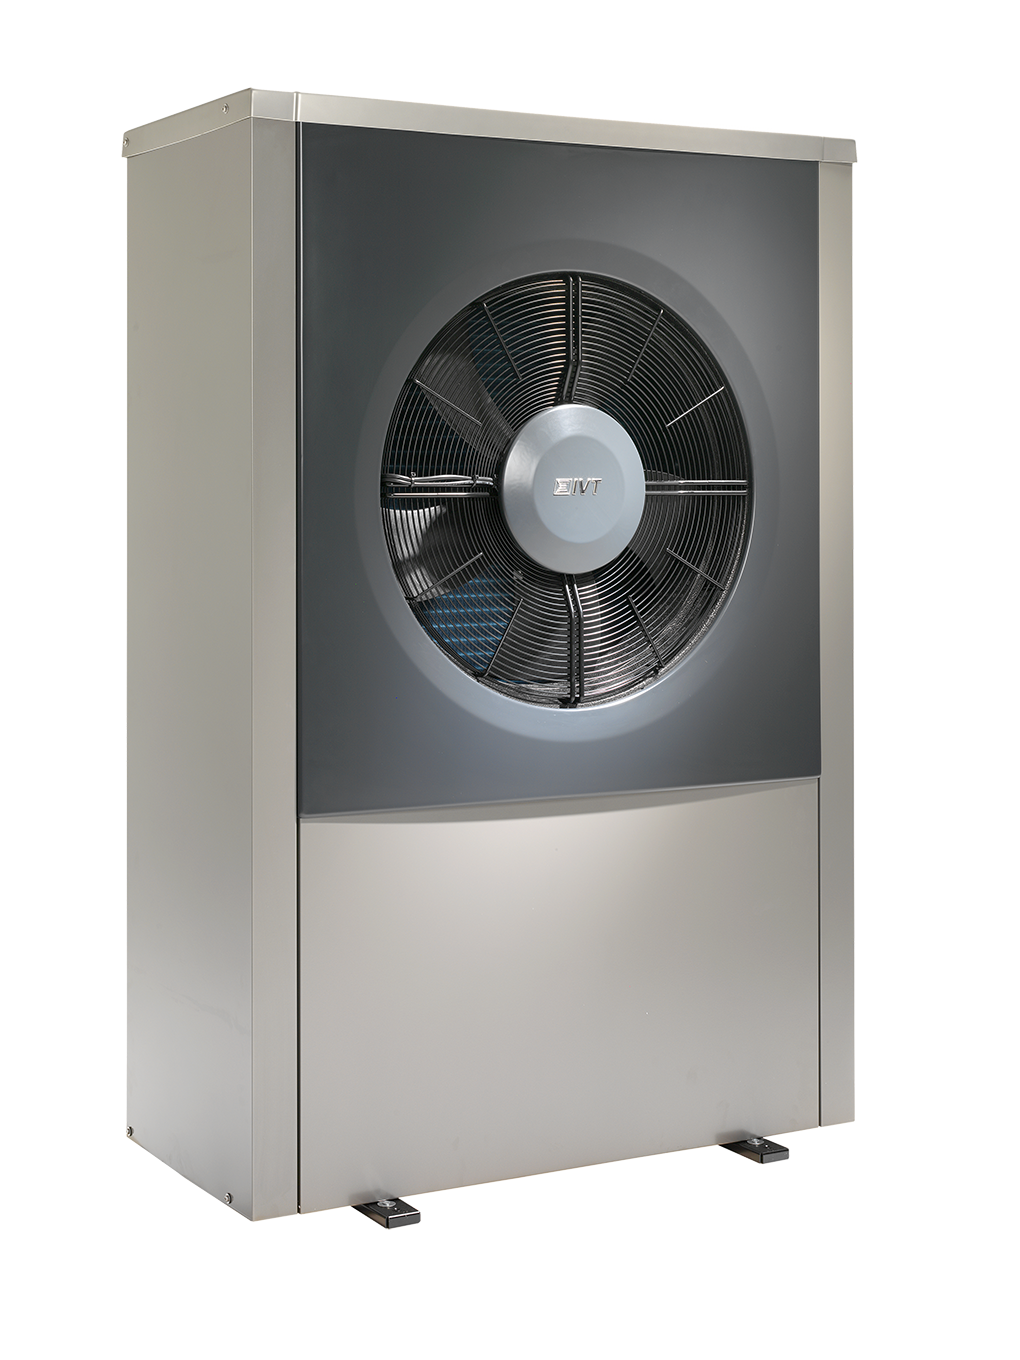 IVT AirX Air Source Heat Pump